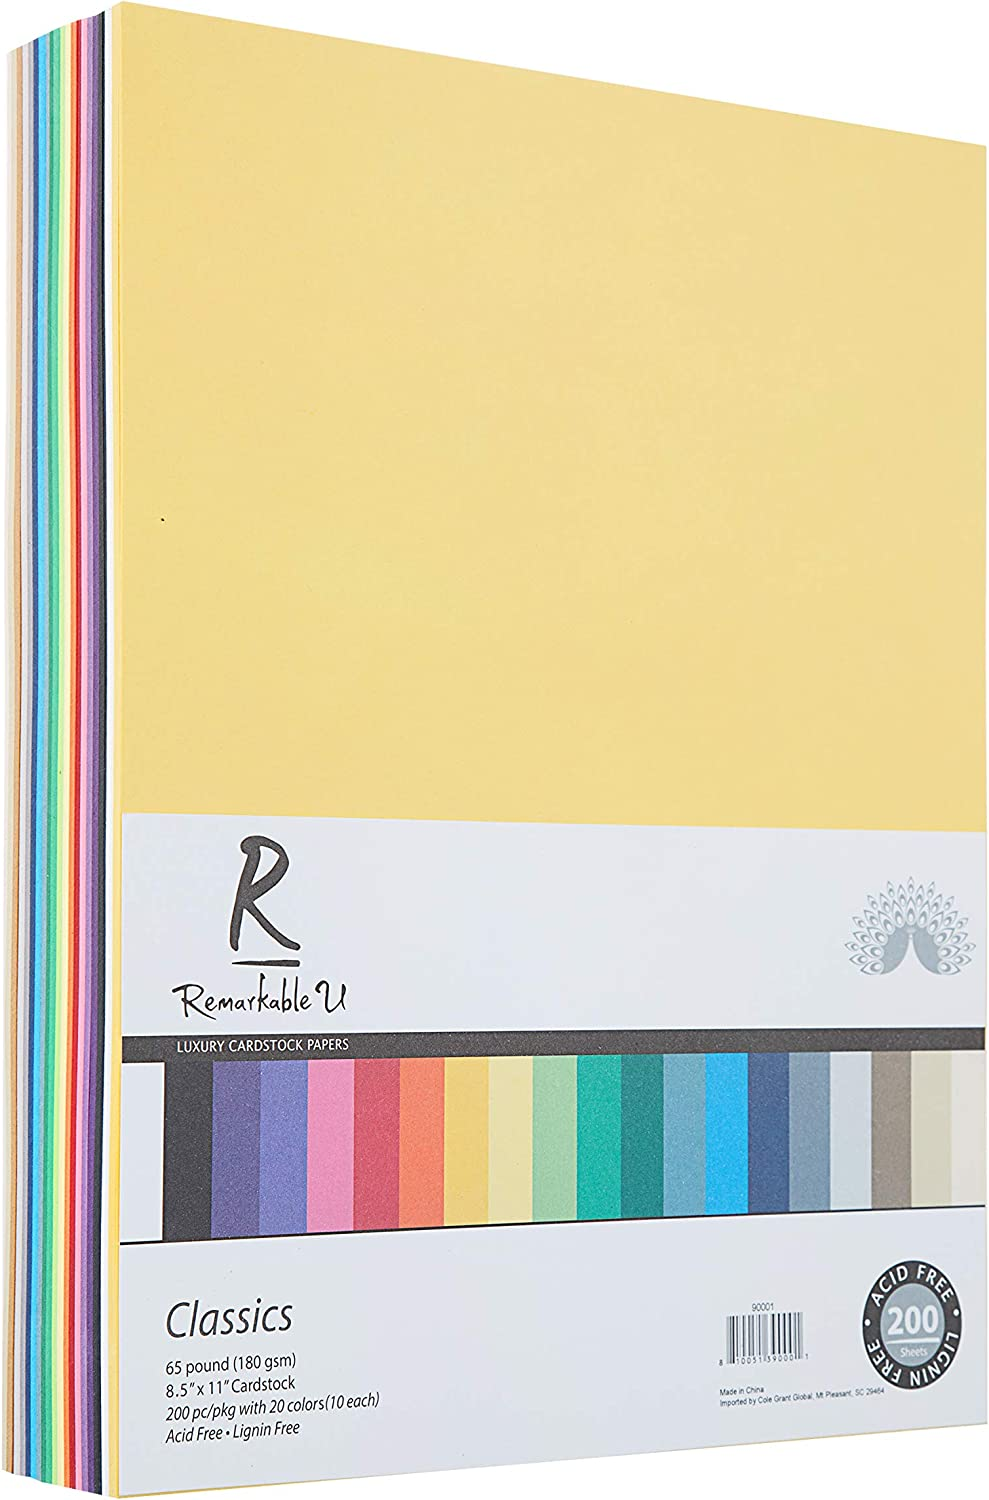 "Premium Colored Cardstock Paper 8.5"" x 11"", Assorted Classic Colors 